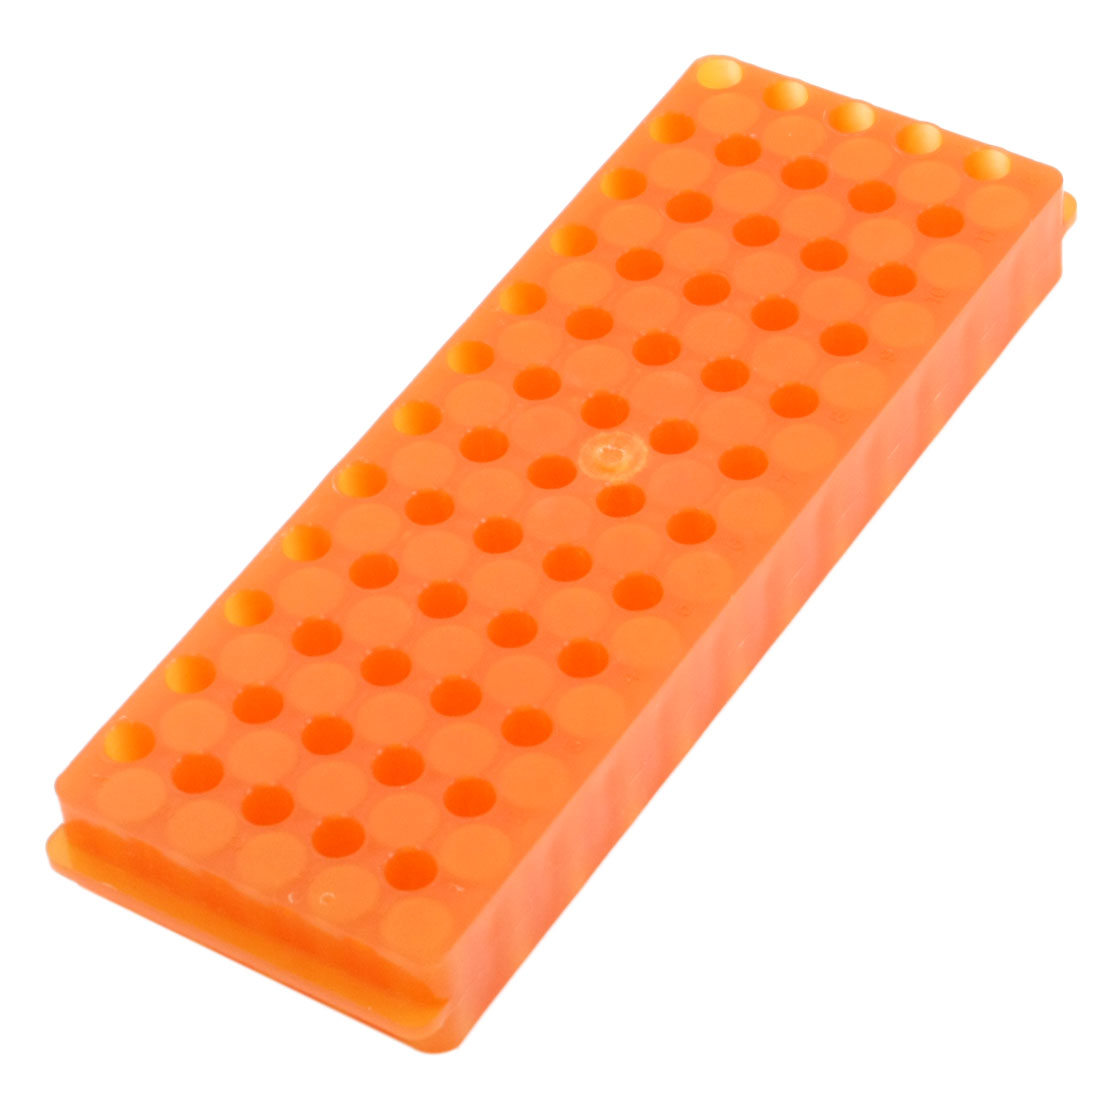 Orange Polypropylene Double Sided 0.5ml/1.5ml/2ml Centrifuge Tube Pipette Vial Holder Rack Stand 60 Positions